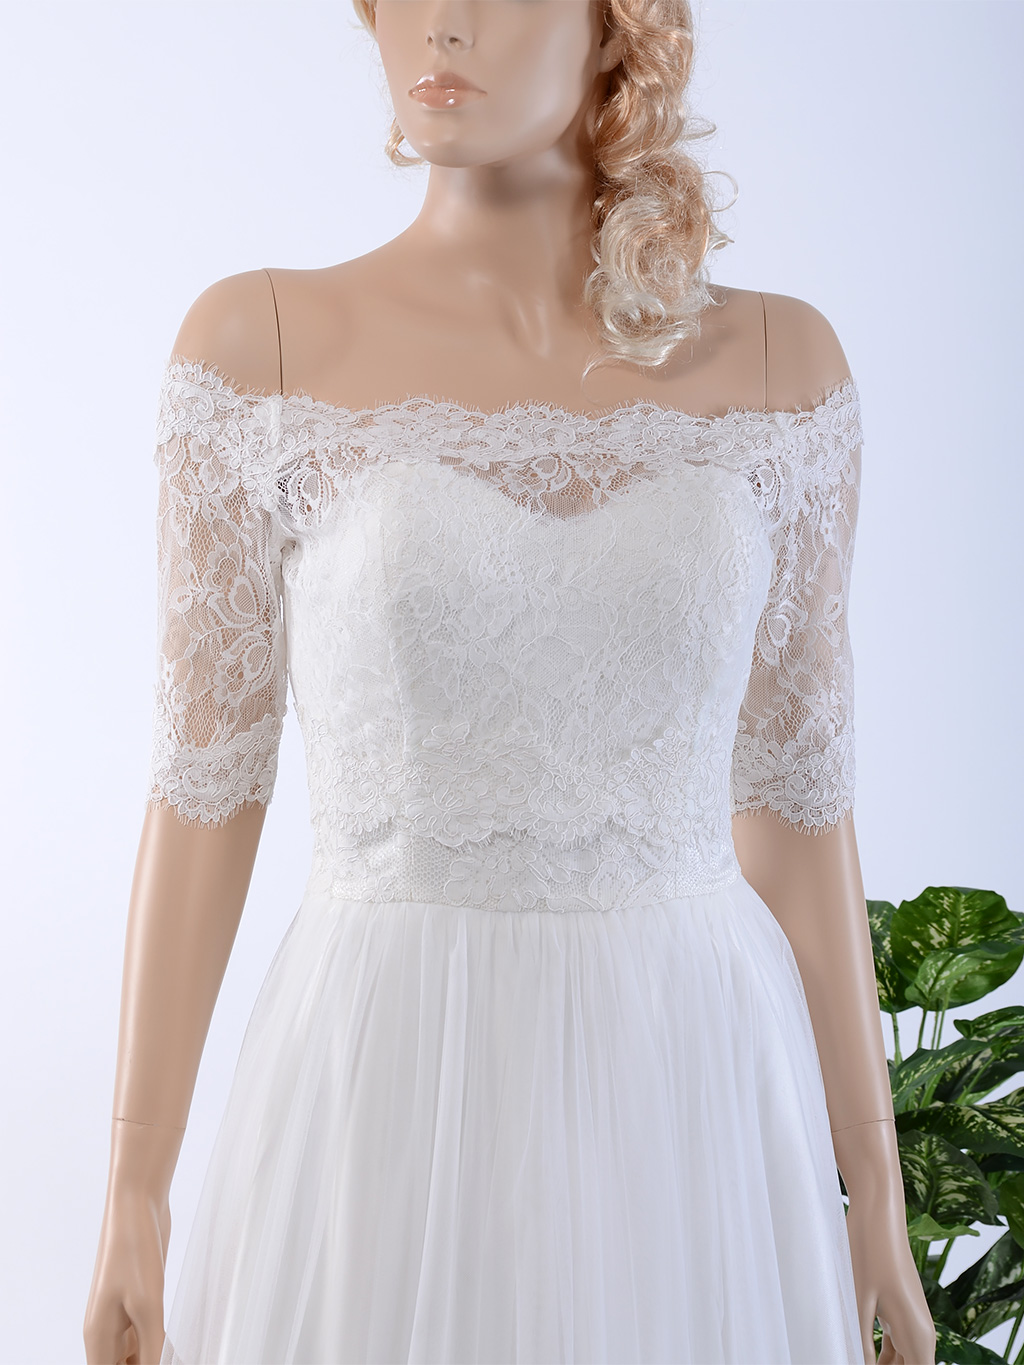 Off-Shoulder Alencon Lace Bolero Wedding jacket wedding dress topper WJ025